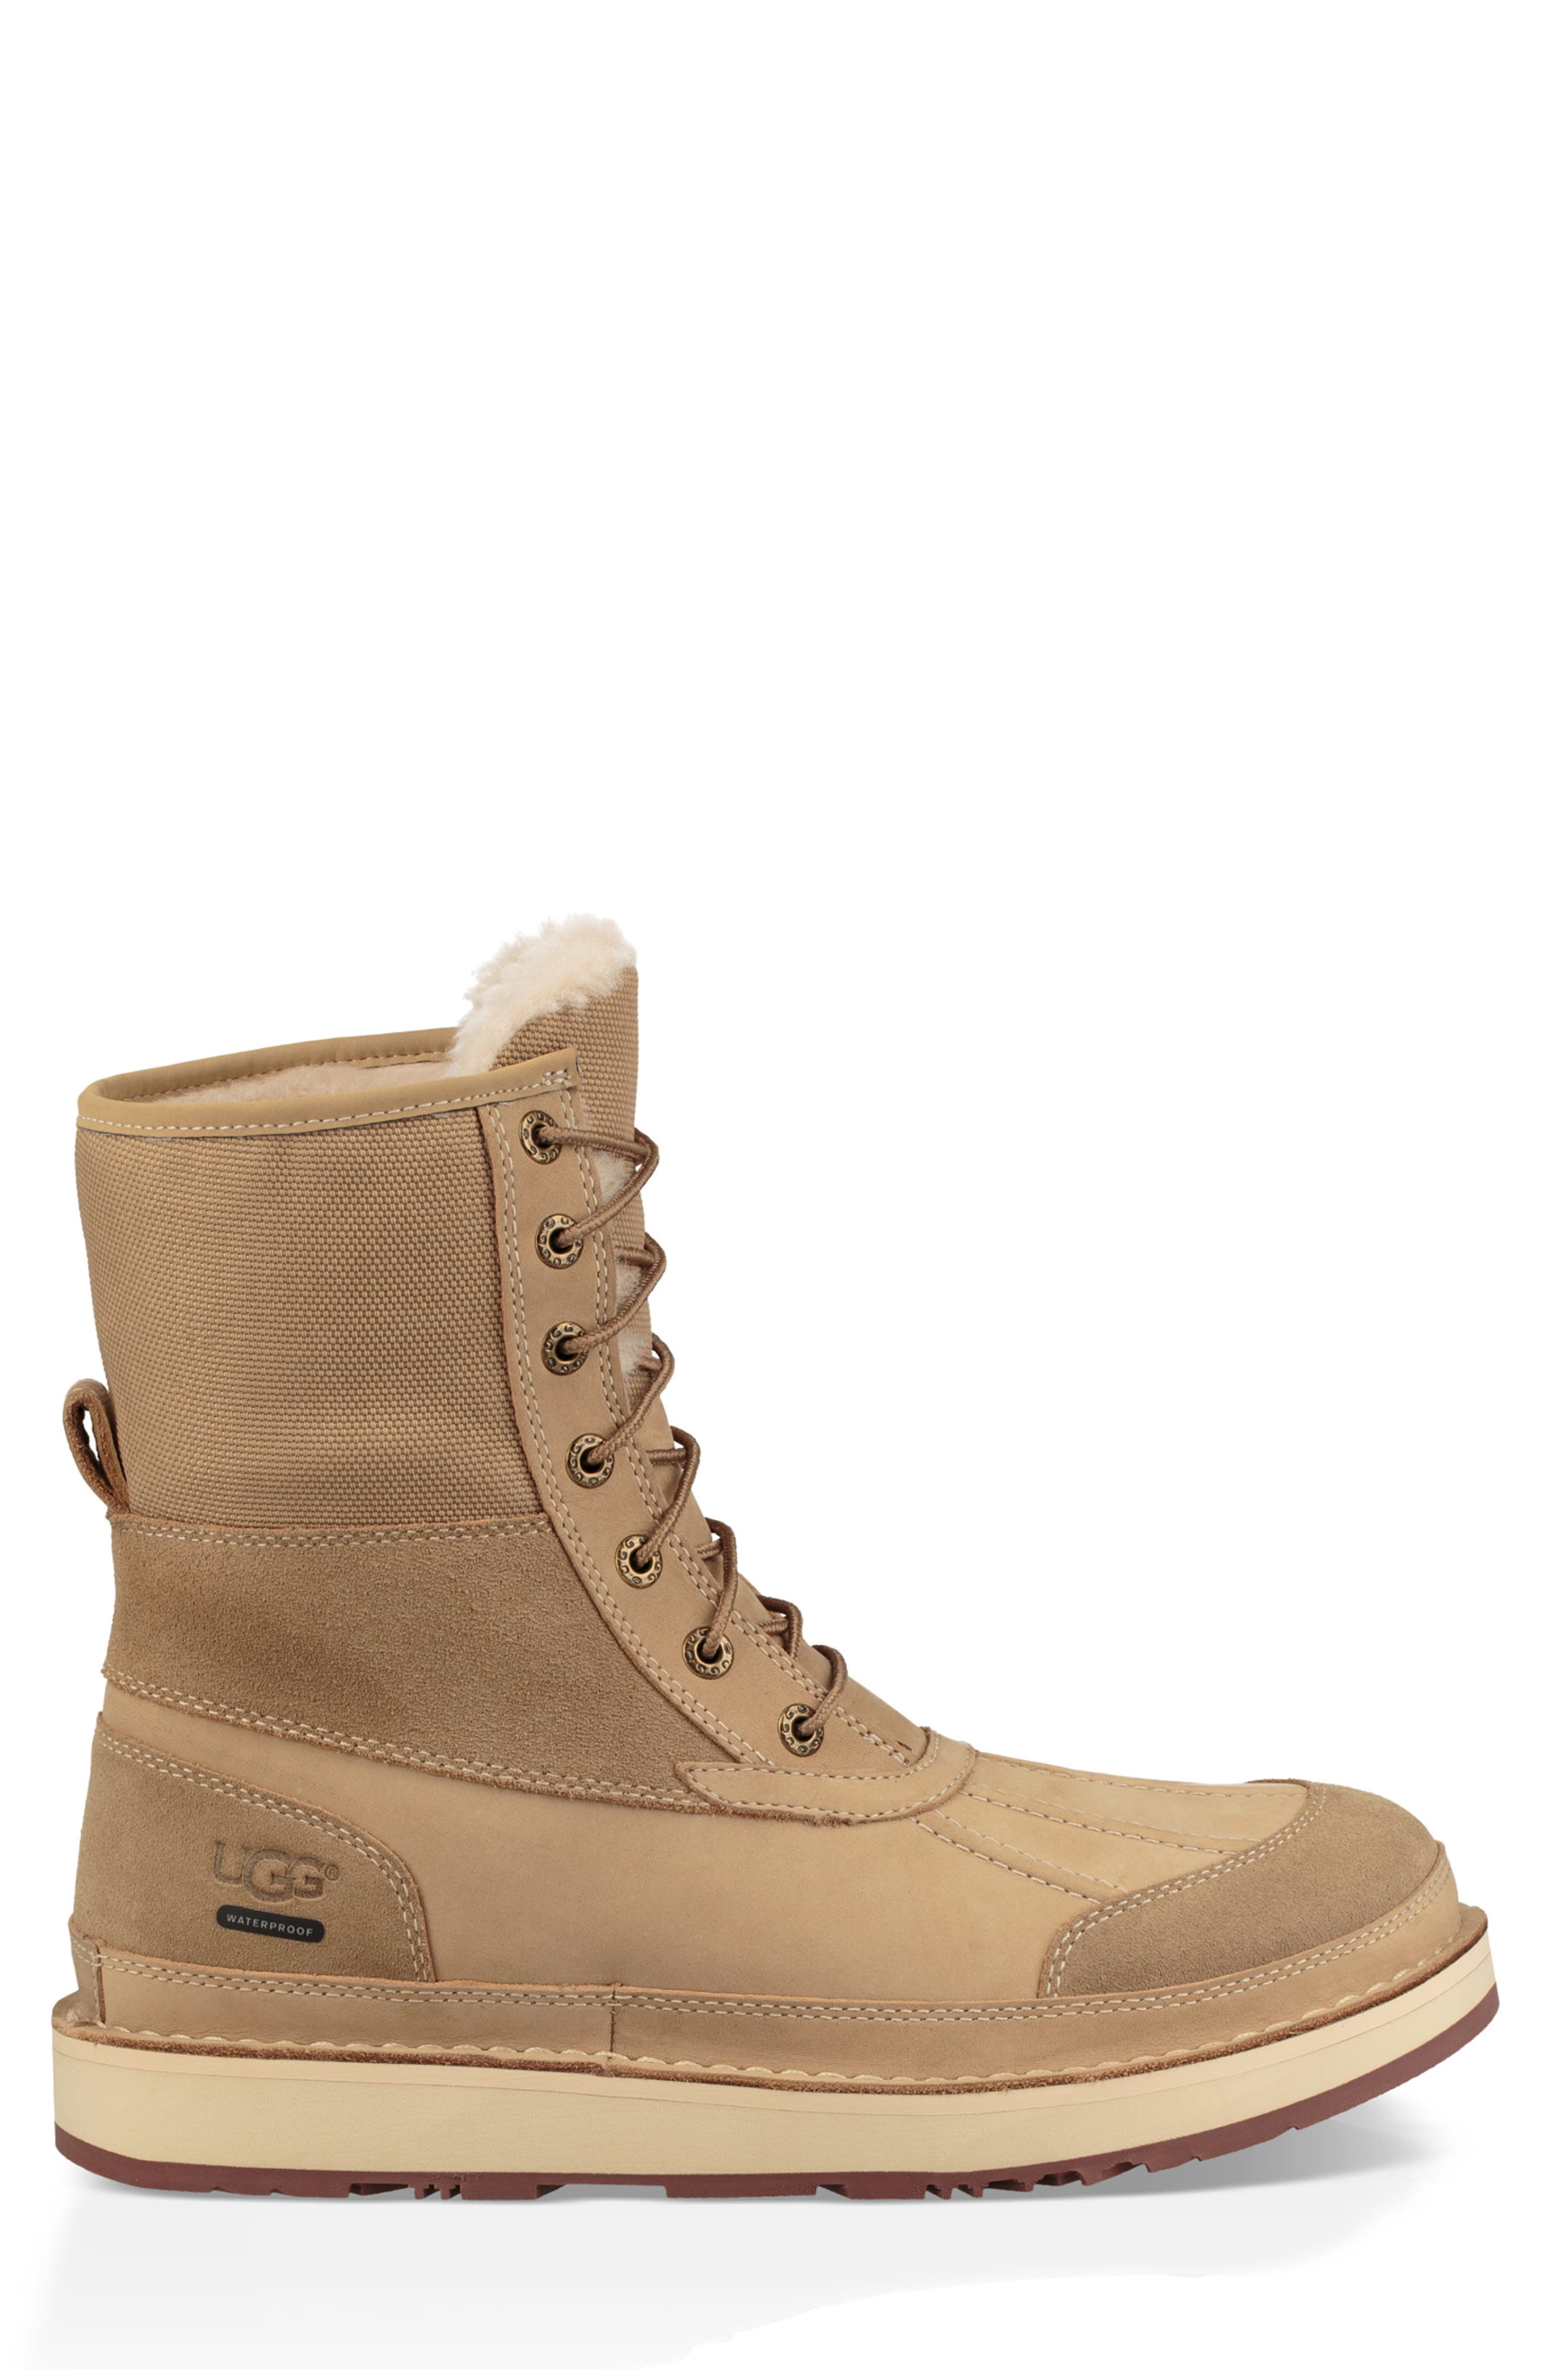 Avalanche Butte Waterproof Boot,                             Alternate thumbnail 4, color,                             DESERT TAN